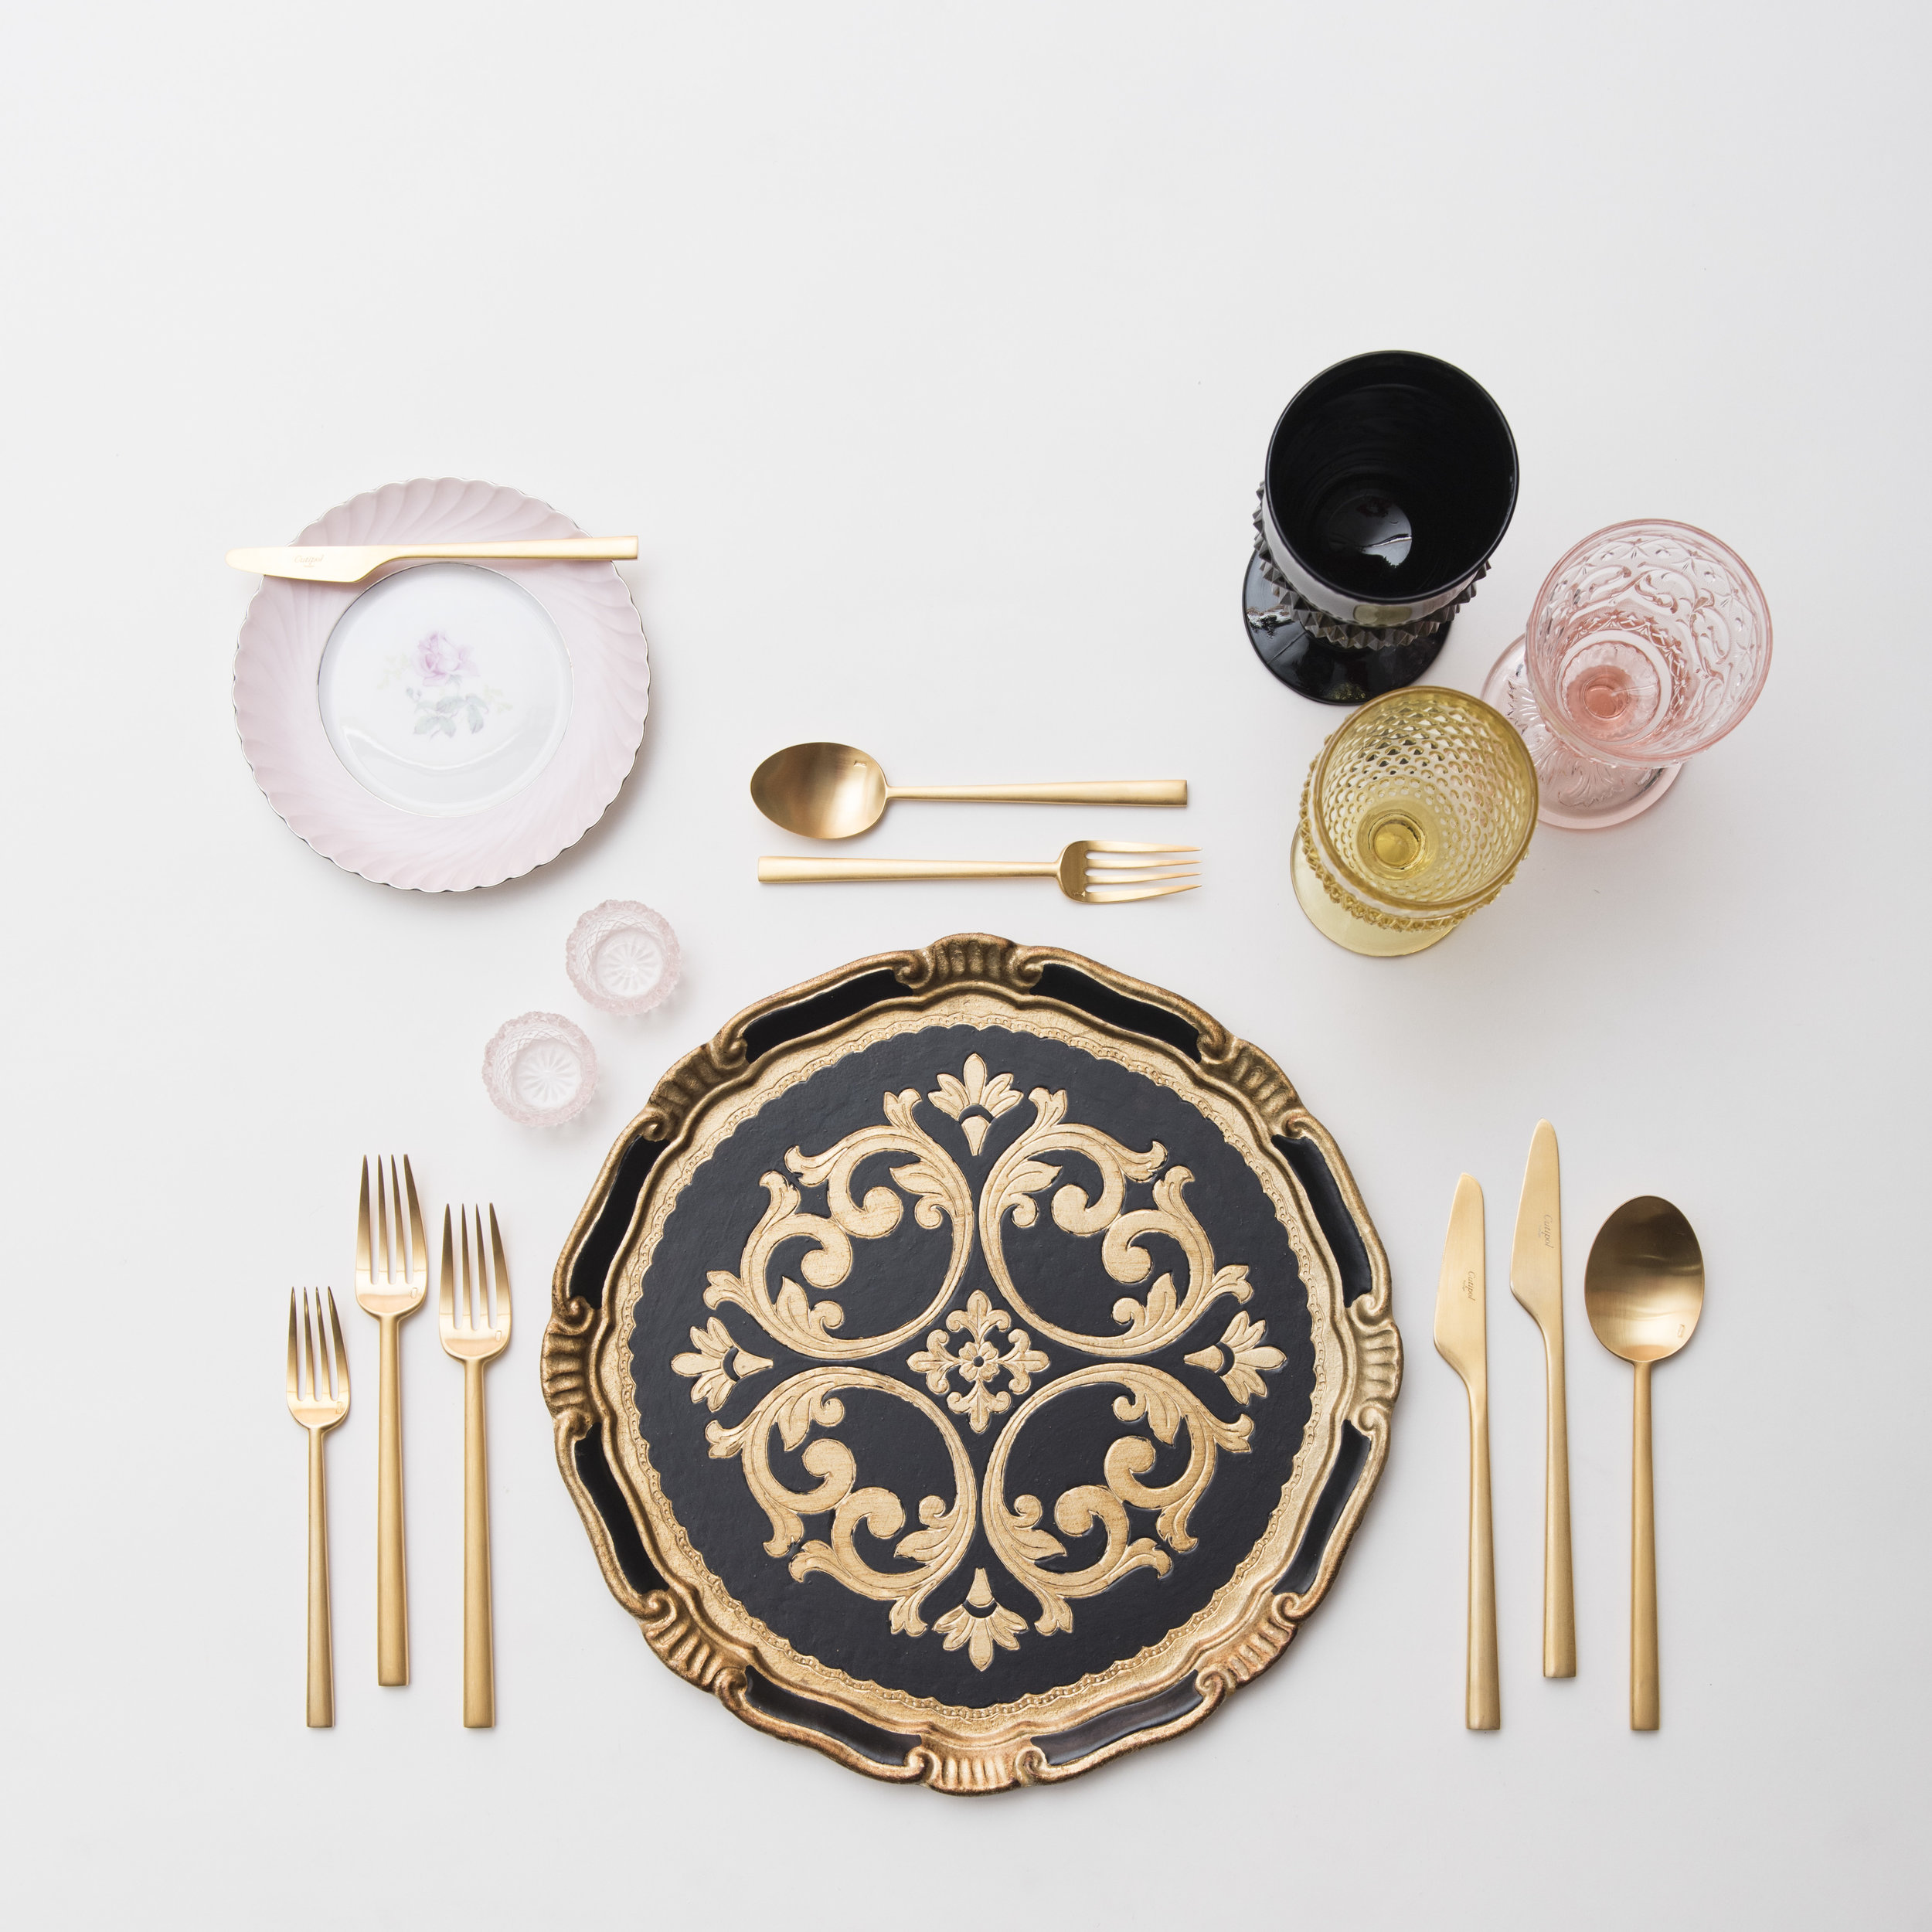 RENT: Florentine Chargers in Black/Gold + Pink Botanicals Vintage China + Rondo Flatware in Brushed 24k Gold + Black/Pink/Yellow Vintage Goblets + Pink Crystal Salt Cellars  SHOP: Florentine Chargers in Black/Gold + Rondo Flatware in Brushed 24k Gold